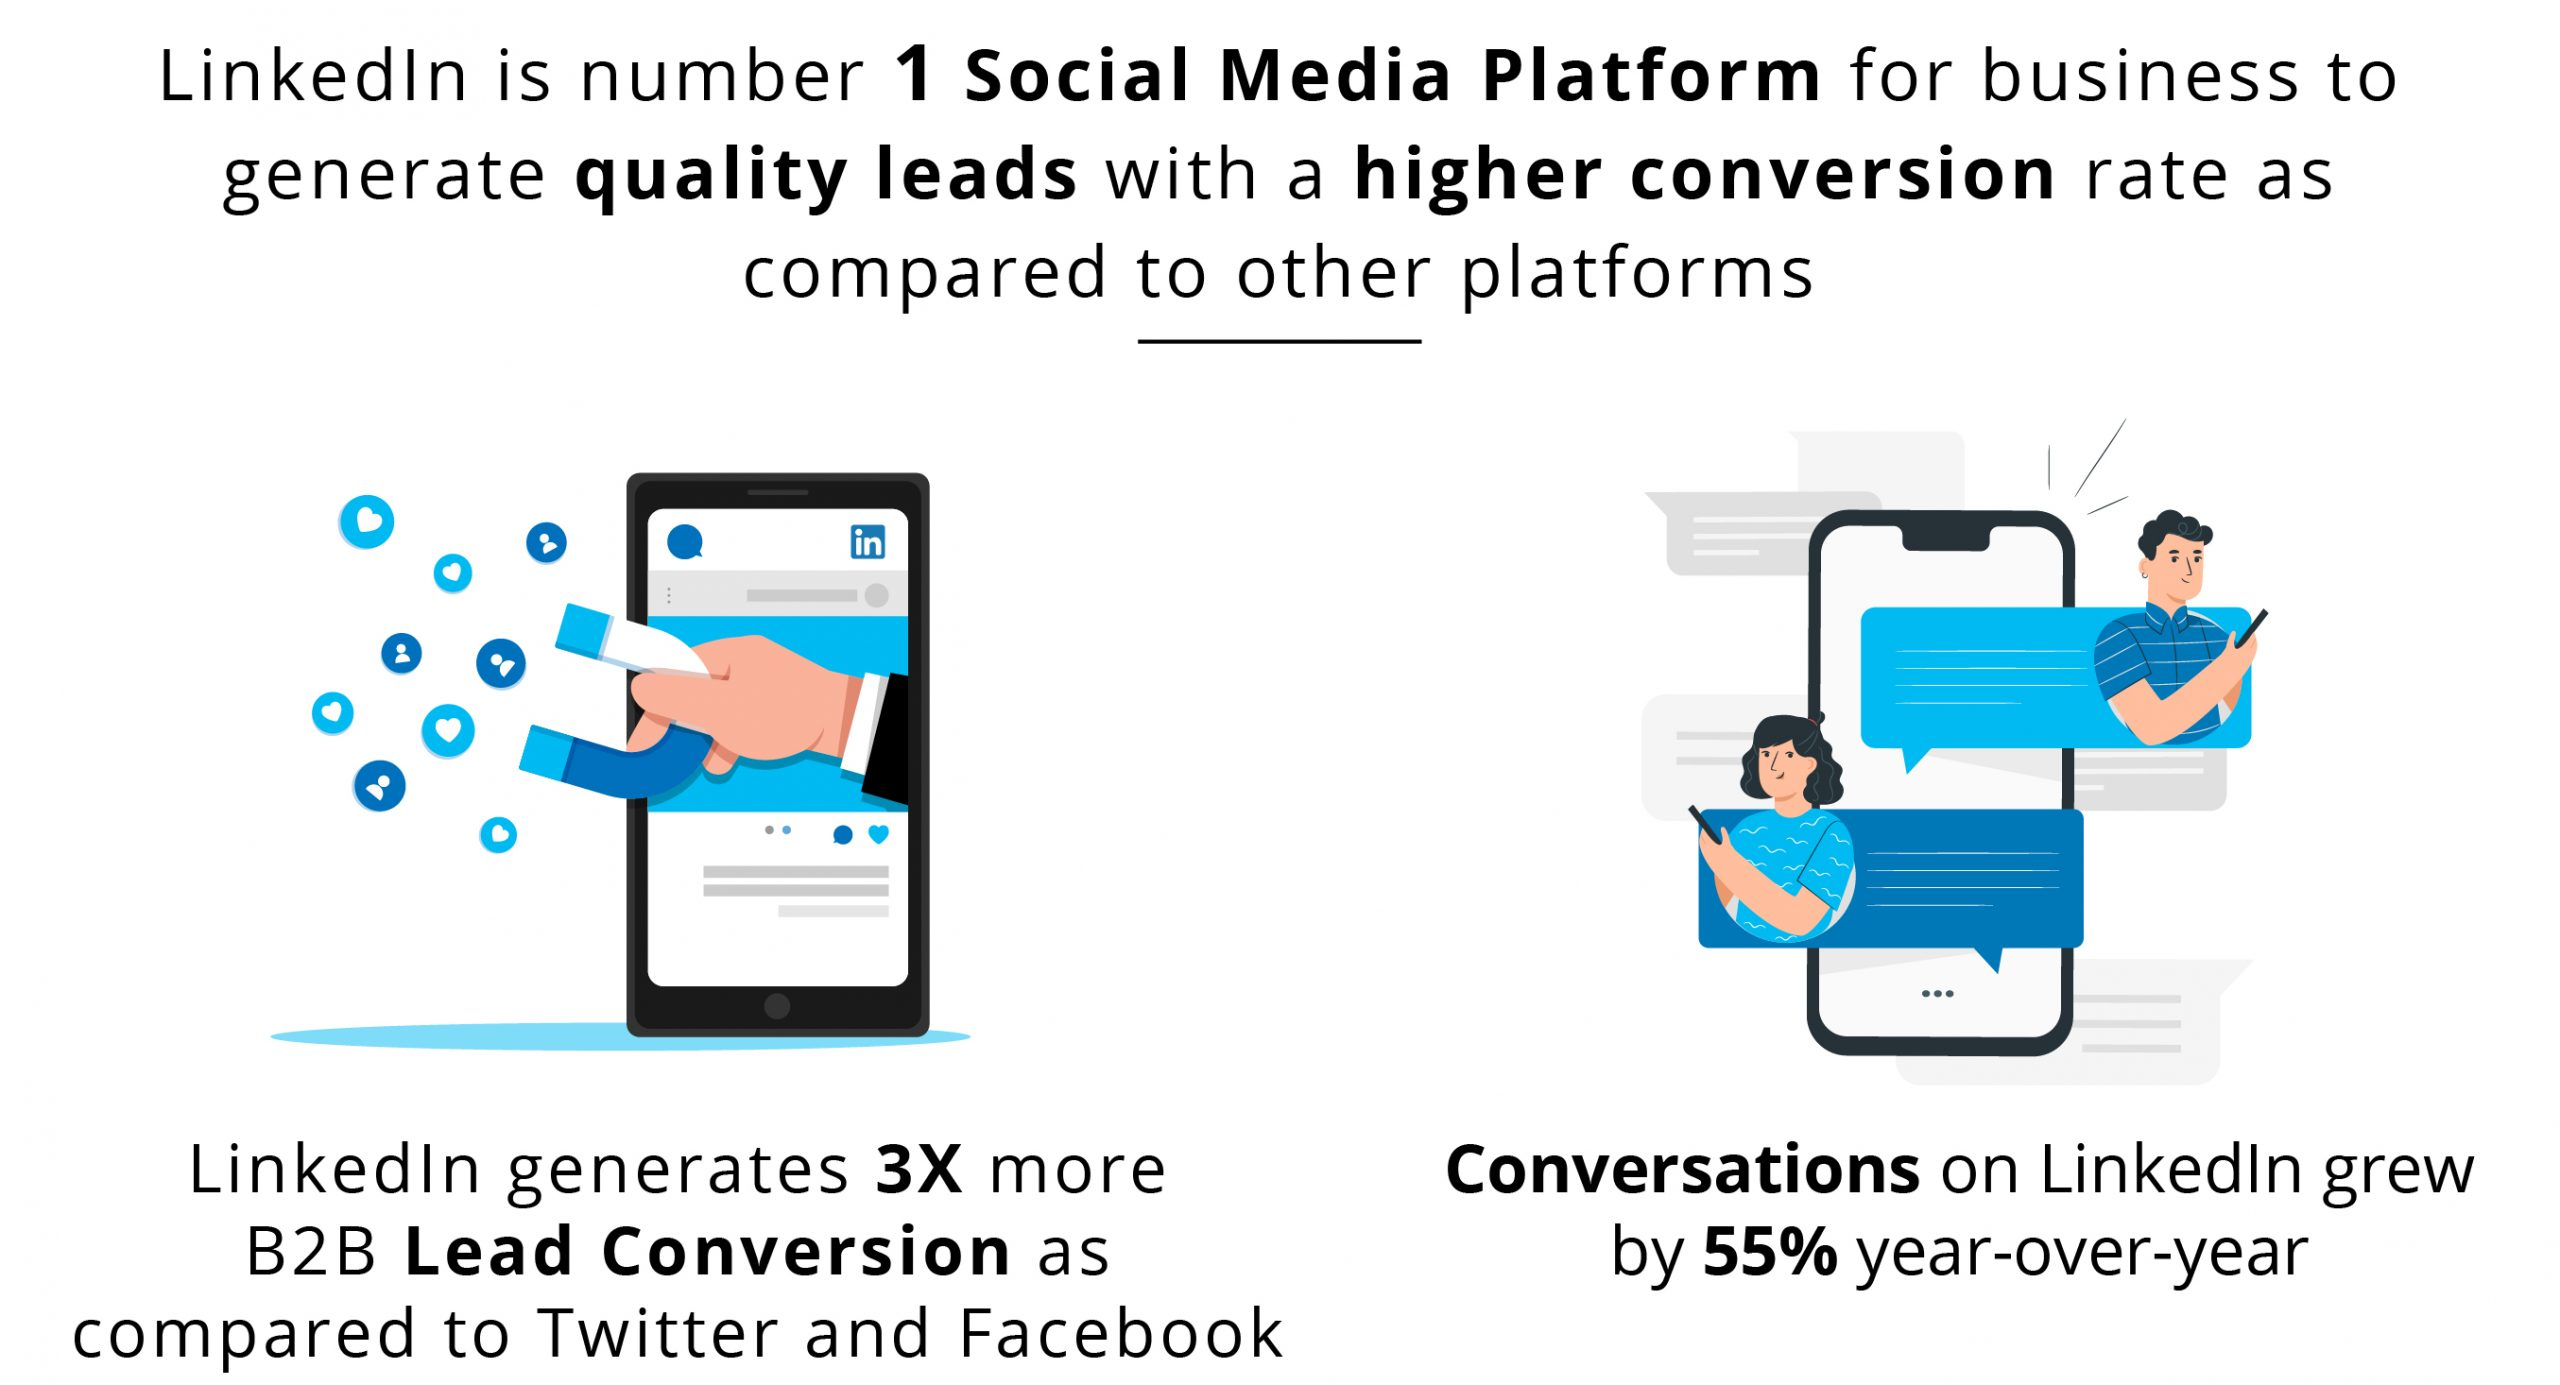 Social Media Platform, quality leads, higher conversion